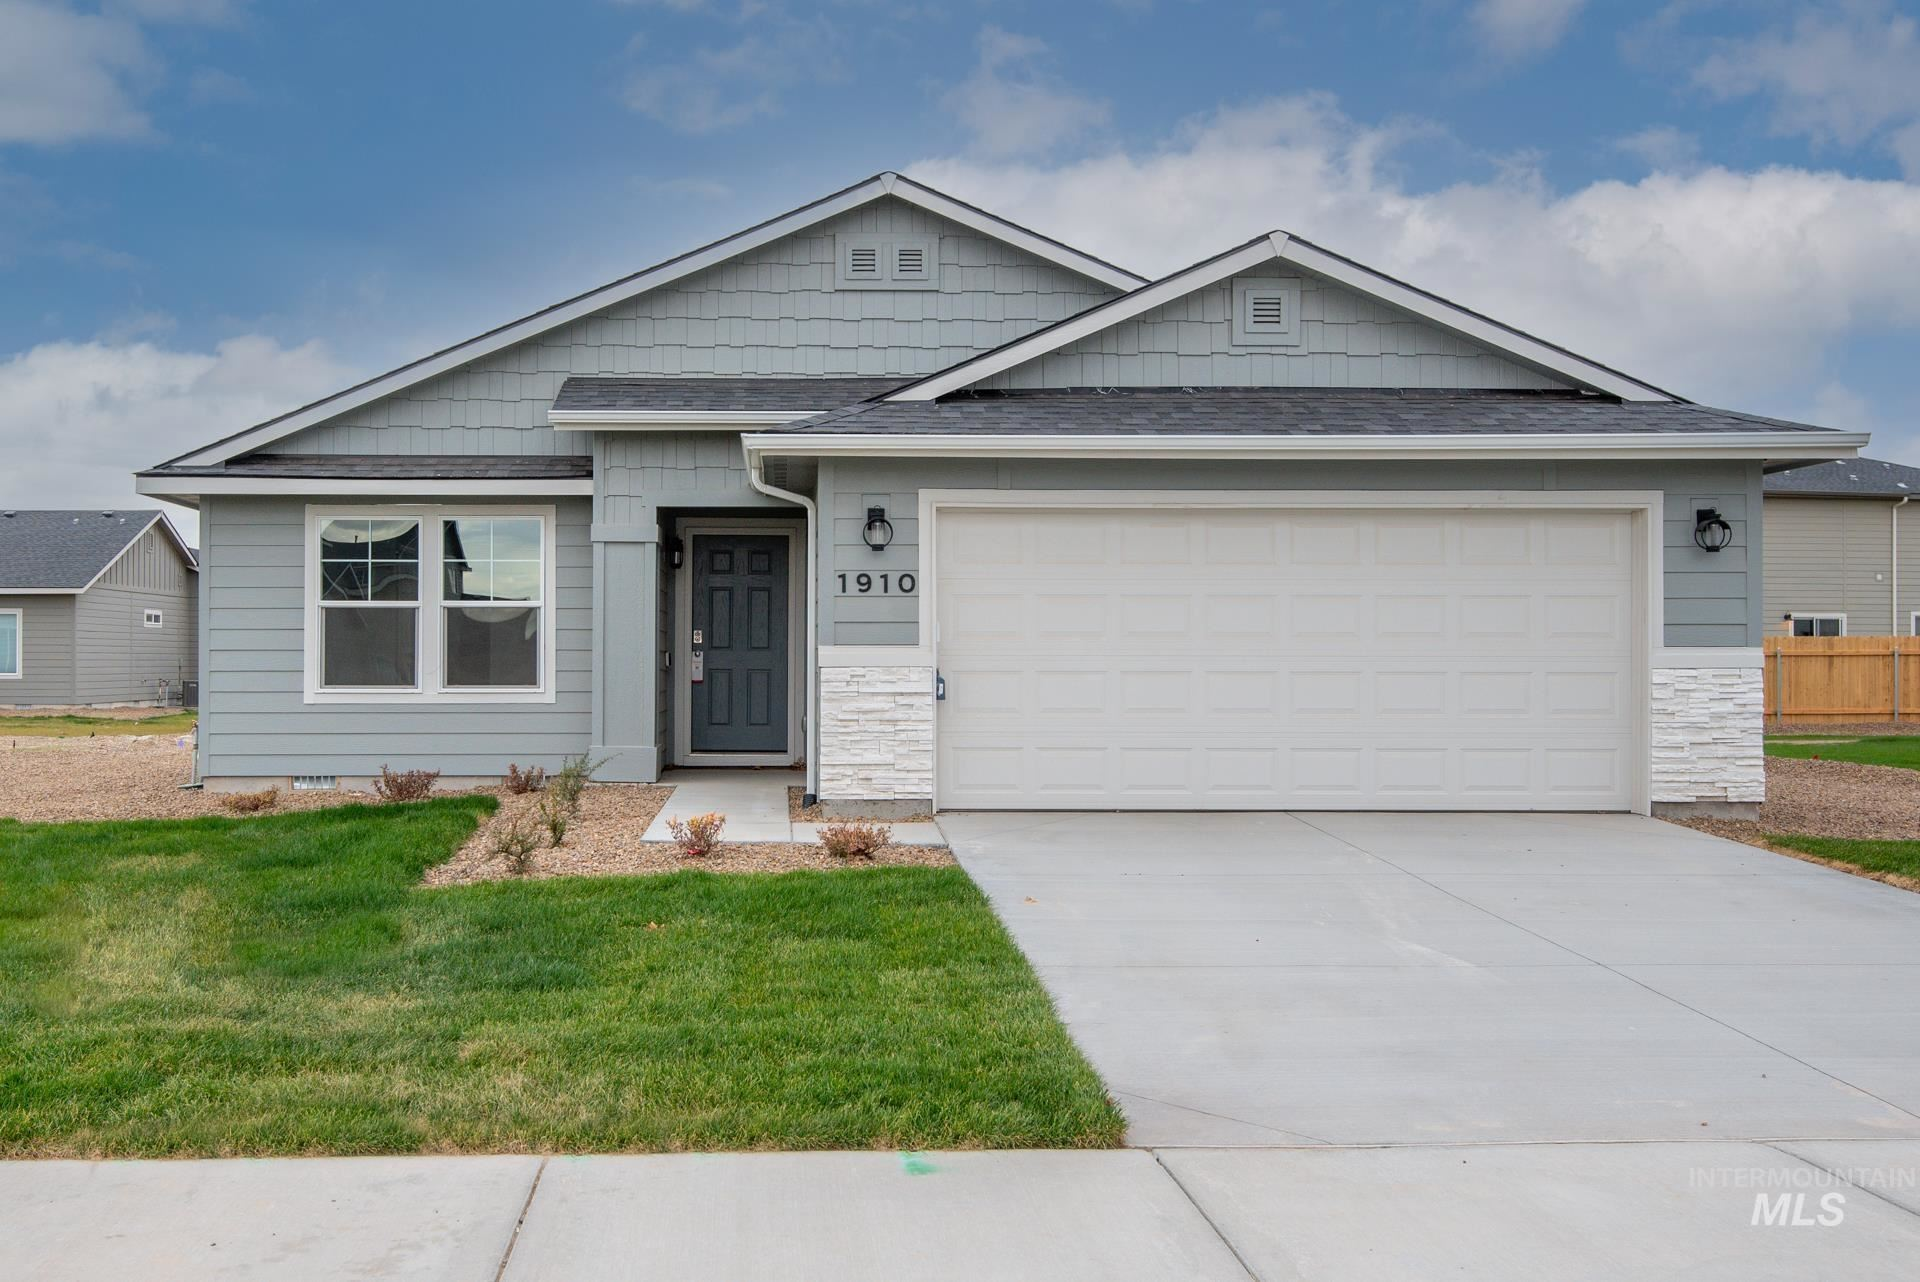 1910 SW Challis Dr, Mountain Home, ID 83647 - MLS#: 98811739